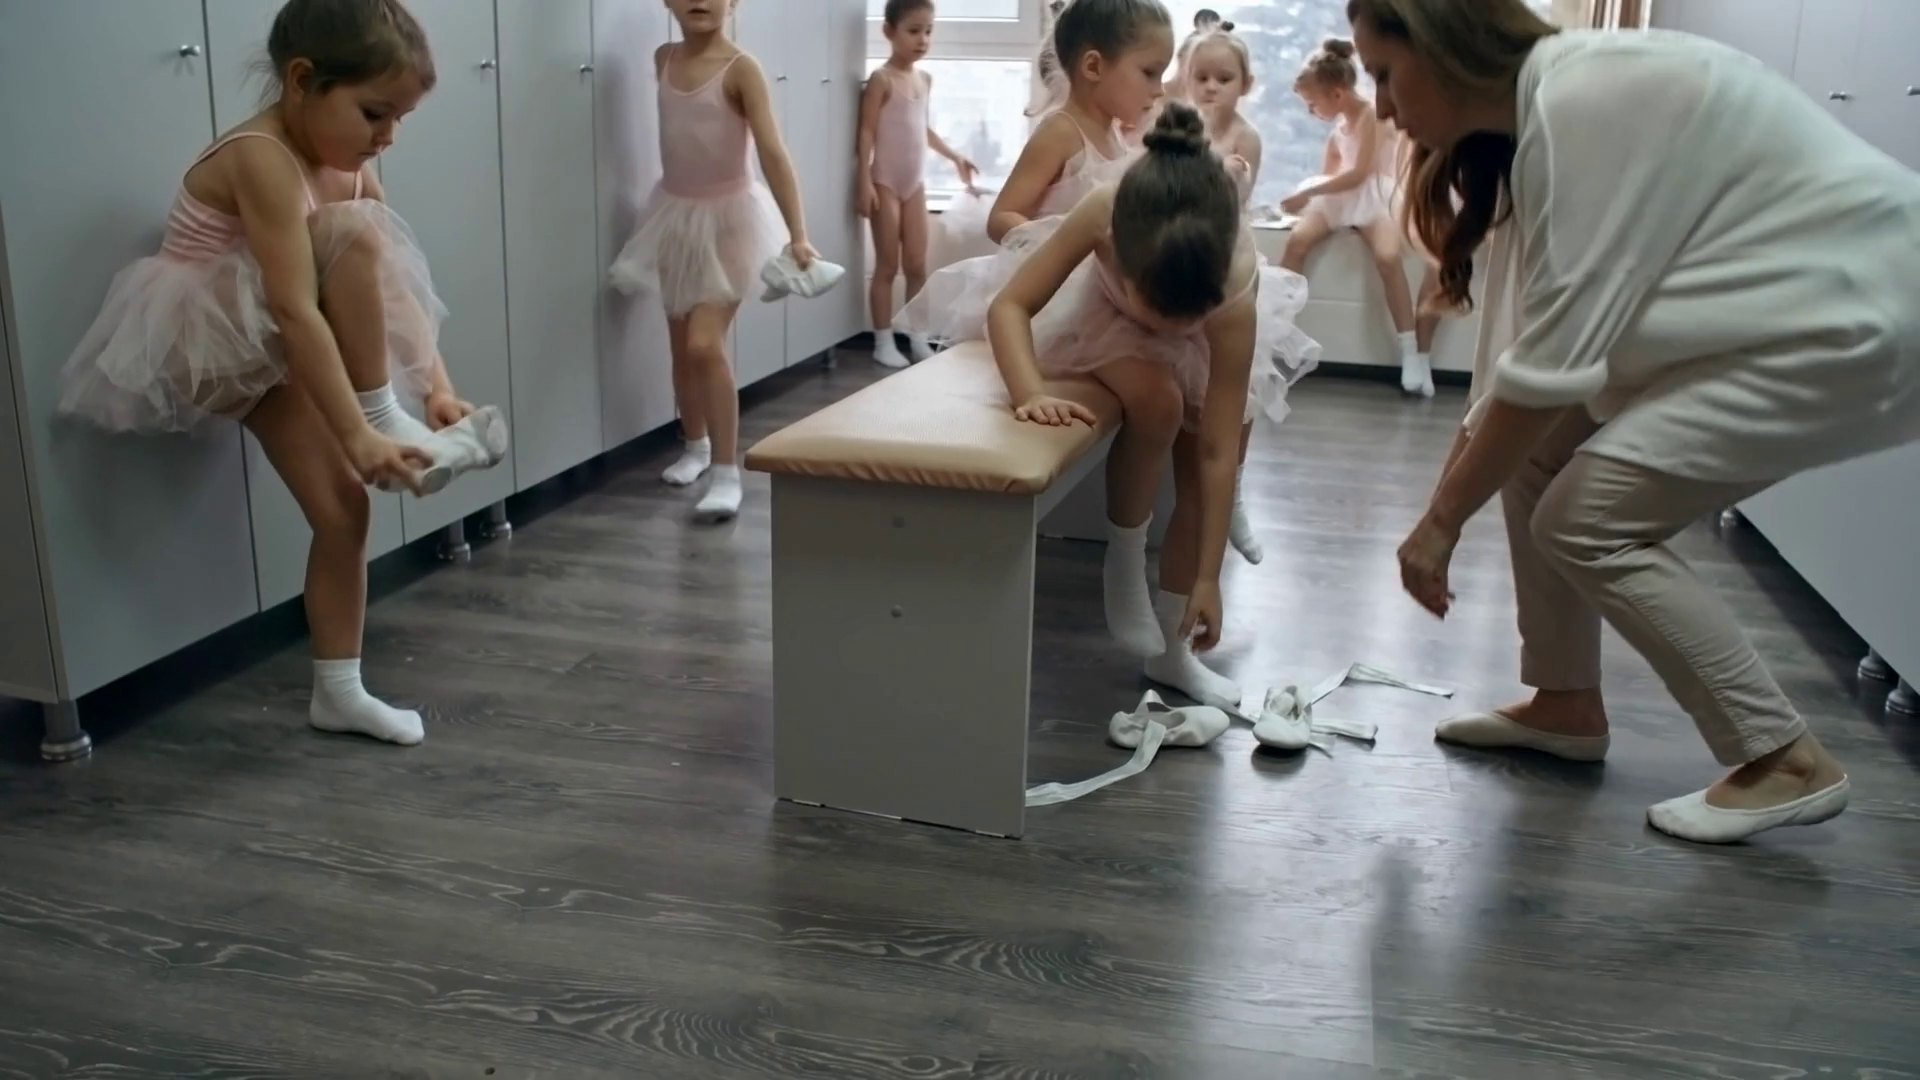 Group of girls of primary school age getting dressed in changing room before having ballet lesson, their teacher helping one of them Stock Video Footage - Storyblocks